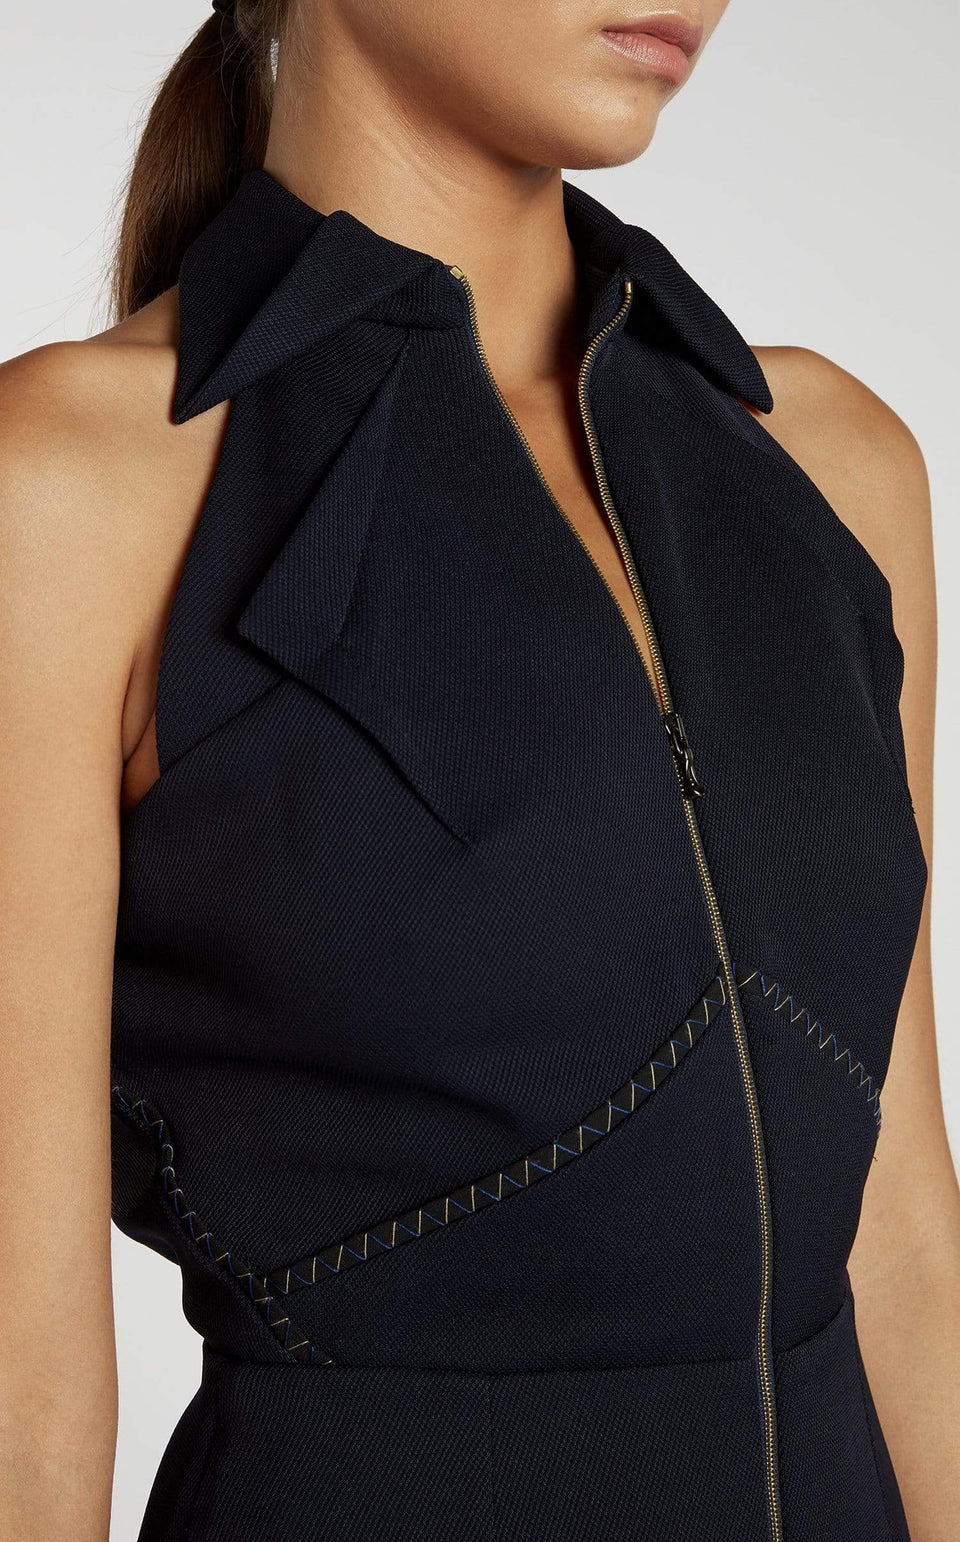 Carabelle Jumpsuit In Navy from Roland Mouret